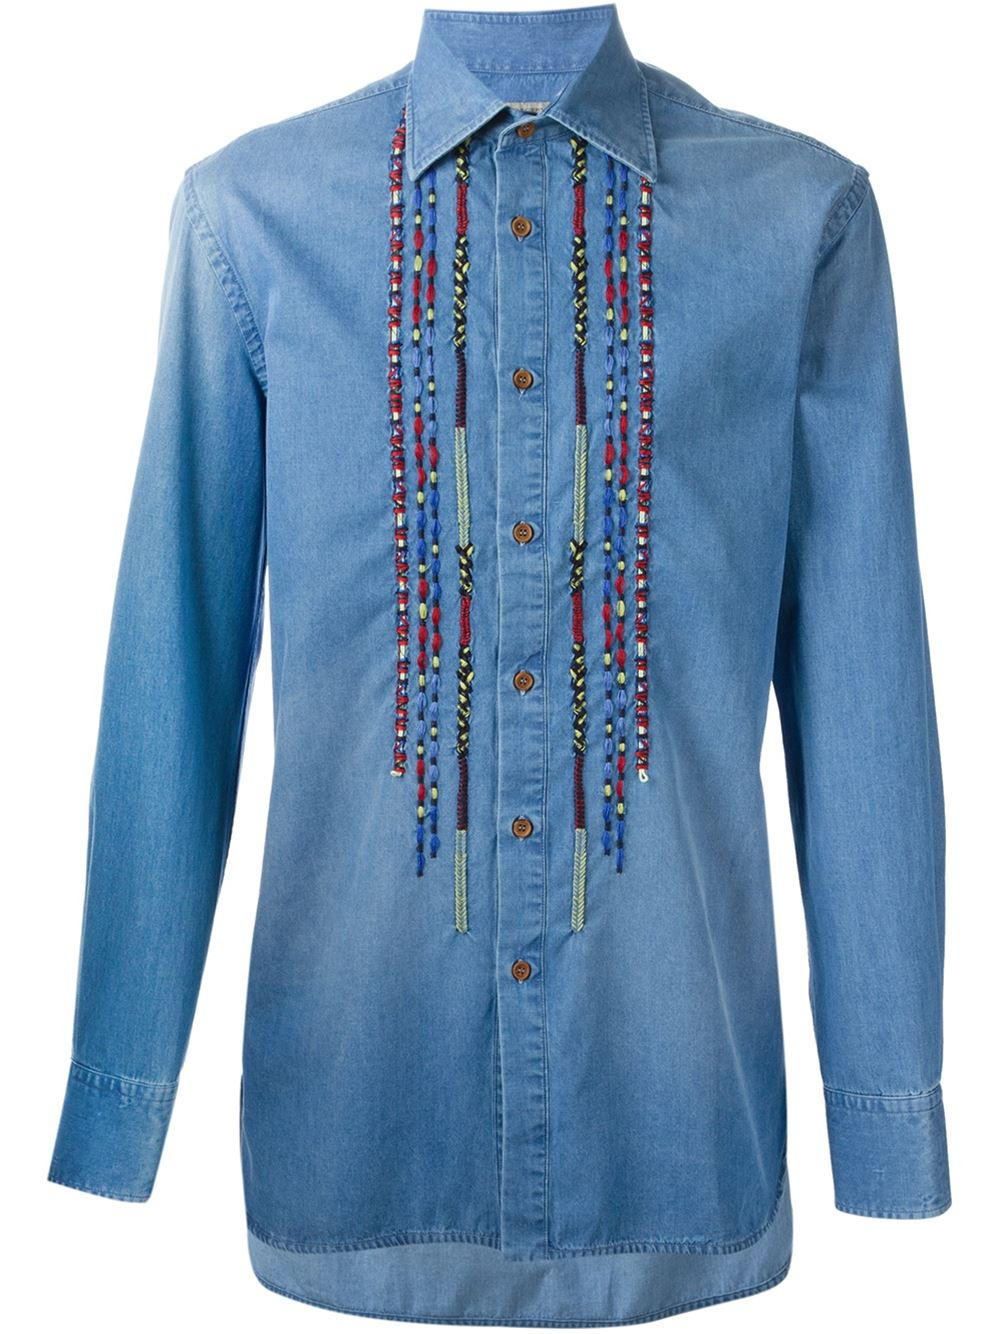 Lyst ermanno scervino embroidery detail denim shirt in